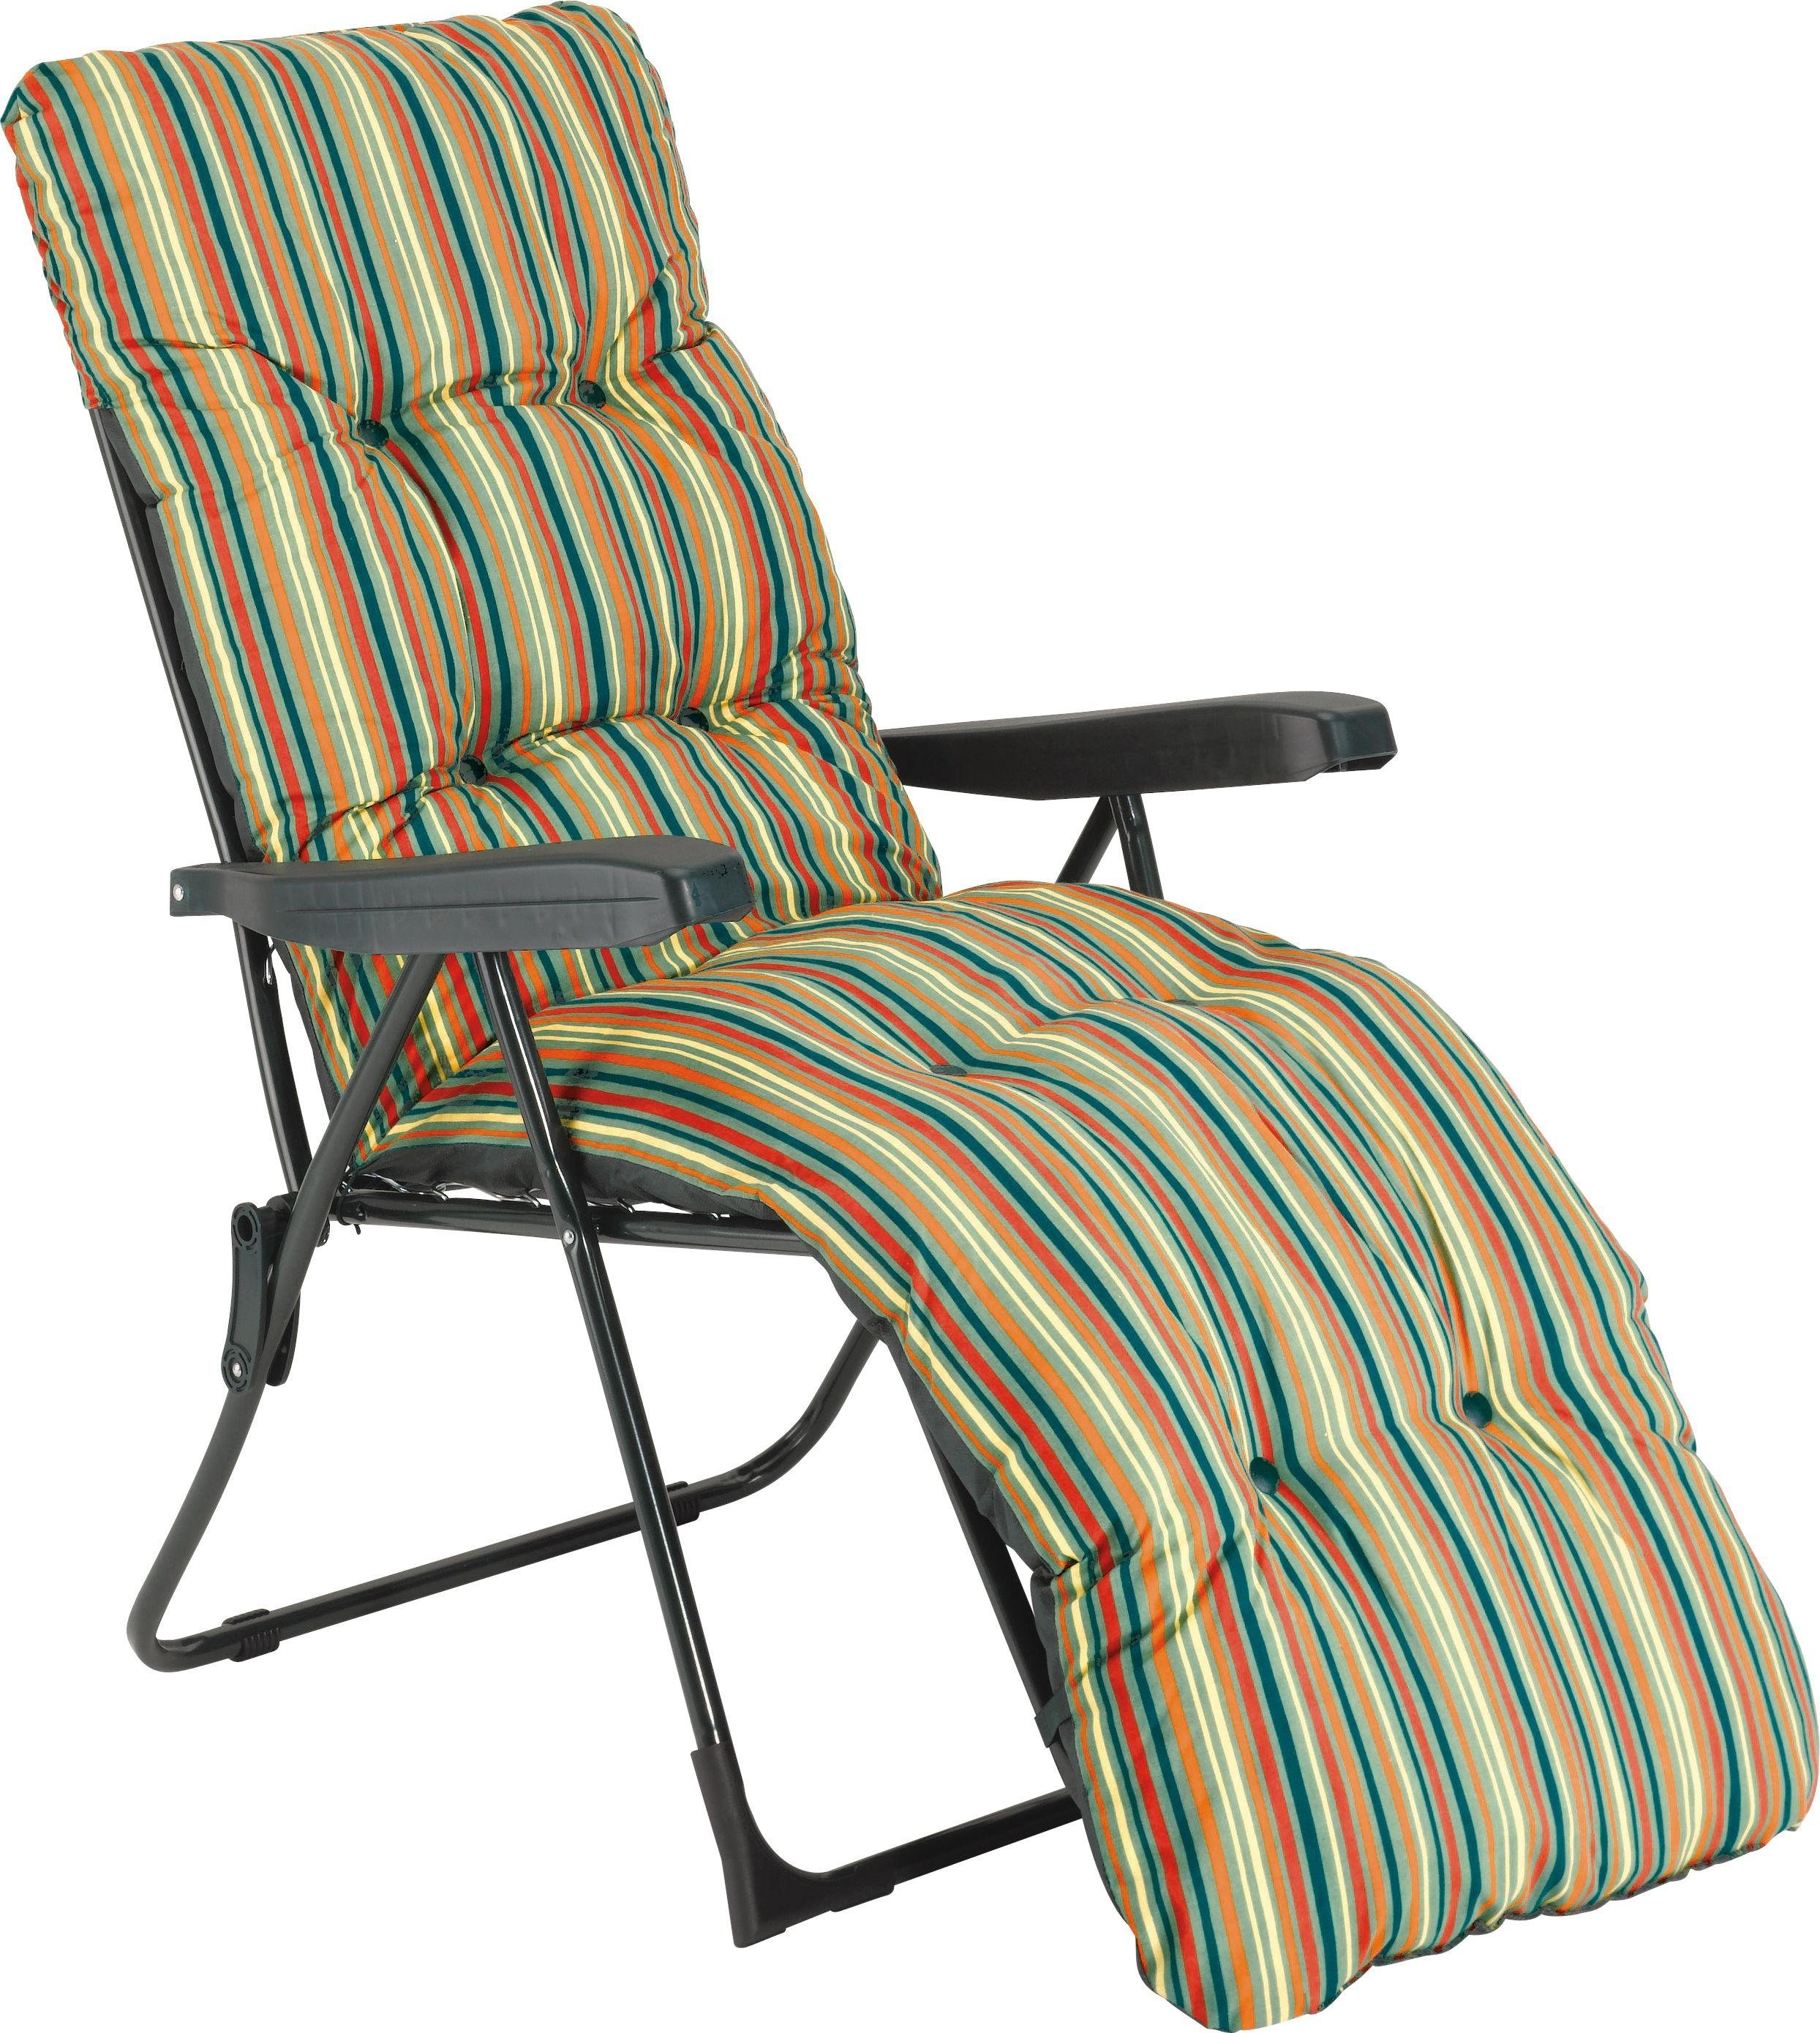 Pictures of ... more details on Striped Foldable Multi-Position Sun Lounger with  Cushion. reclining garden lounger